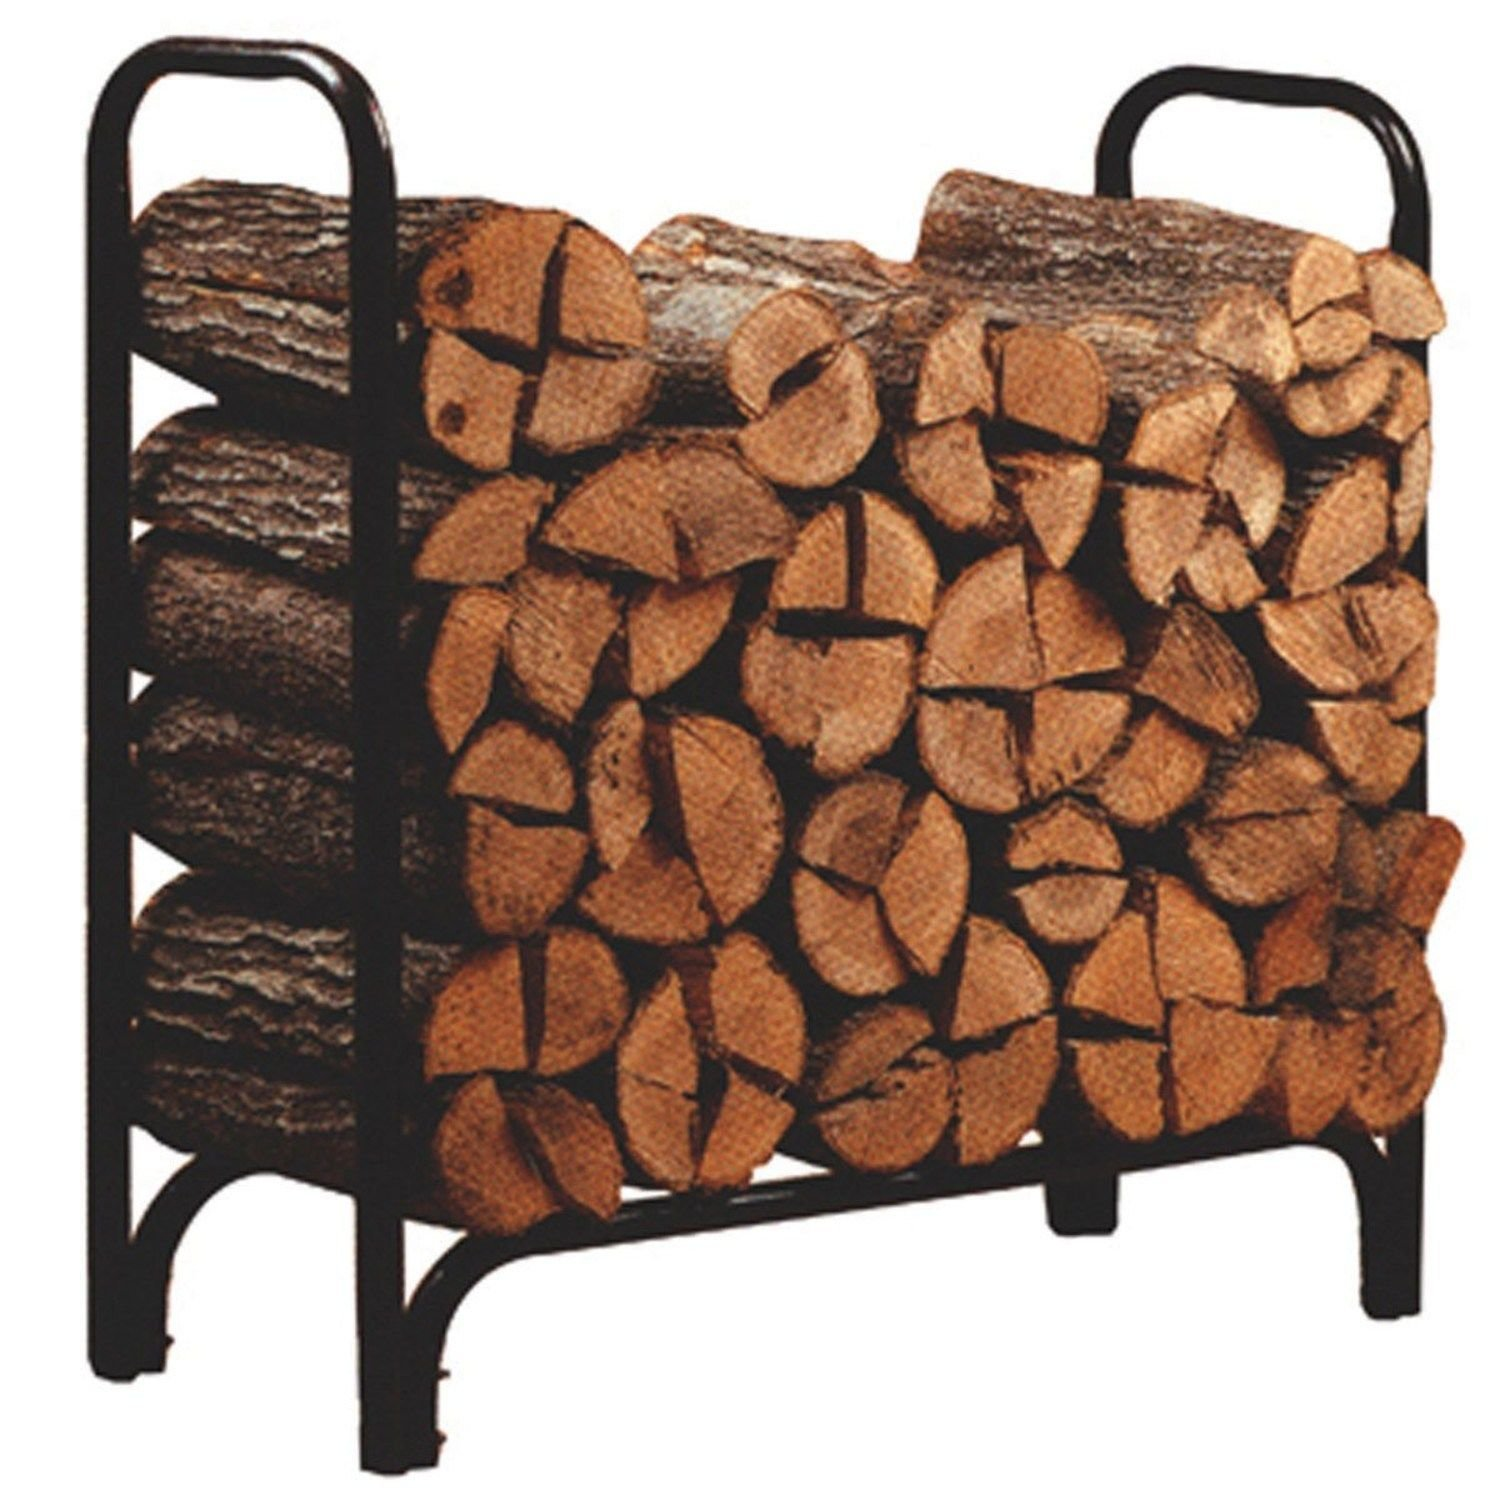 WALCUT 4ft Outdoor Firewood Log Rack for Fireplace, Heavy Duty Wood Stacker Holder for Patio, Kindling Logs Storage Stand Steel Tubular Wood Pile Racks Black